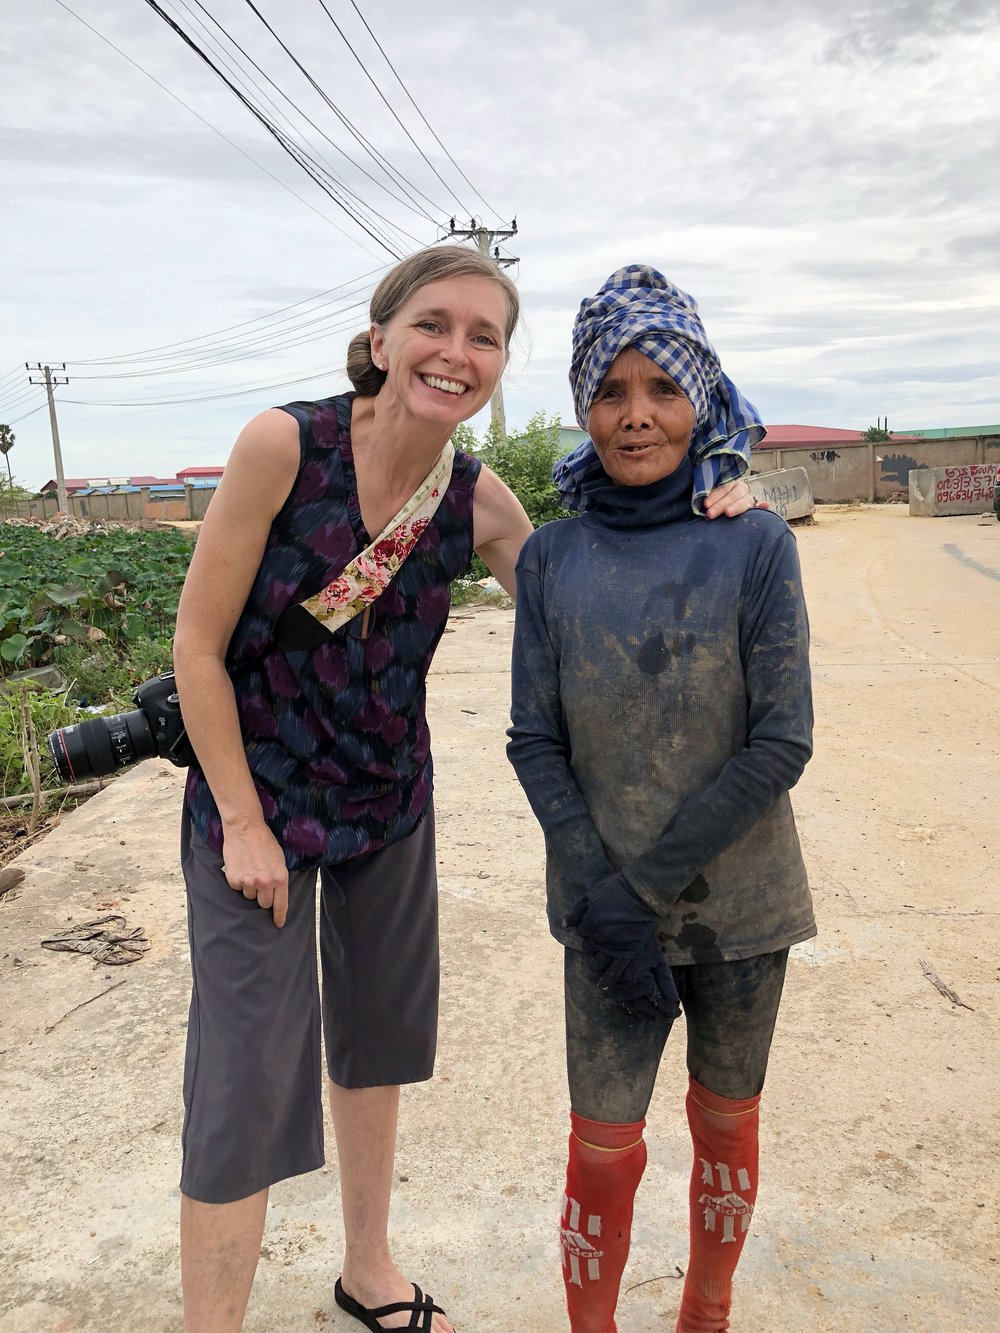 "Kirsten with Srey Nher, one of the first women photographed for the project. When asked what her hope for the future is she said she didn't have hope as she is ""old and poor."" Kirsten asked if she knew Jesus and Srey Nher said, ""Yes, I've heard but I don't see how that (He) can help."" We are thankful for this open door for sharing the hope we have in Christ, and pray that the relationship with this woman and her husband (who is 98 (!!) and was also photographed for the project) will grow. Pray for this sweet couple. We feel blessed to have met them and feel they are among those that the Lord desires for us to serve in practical ways."